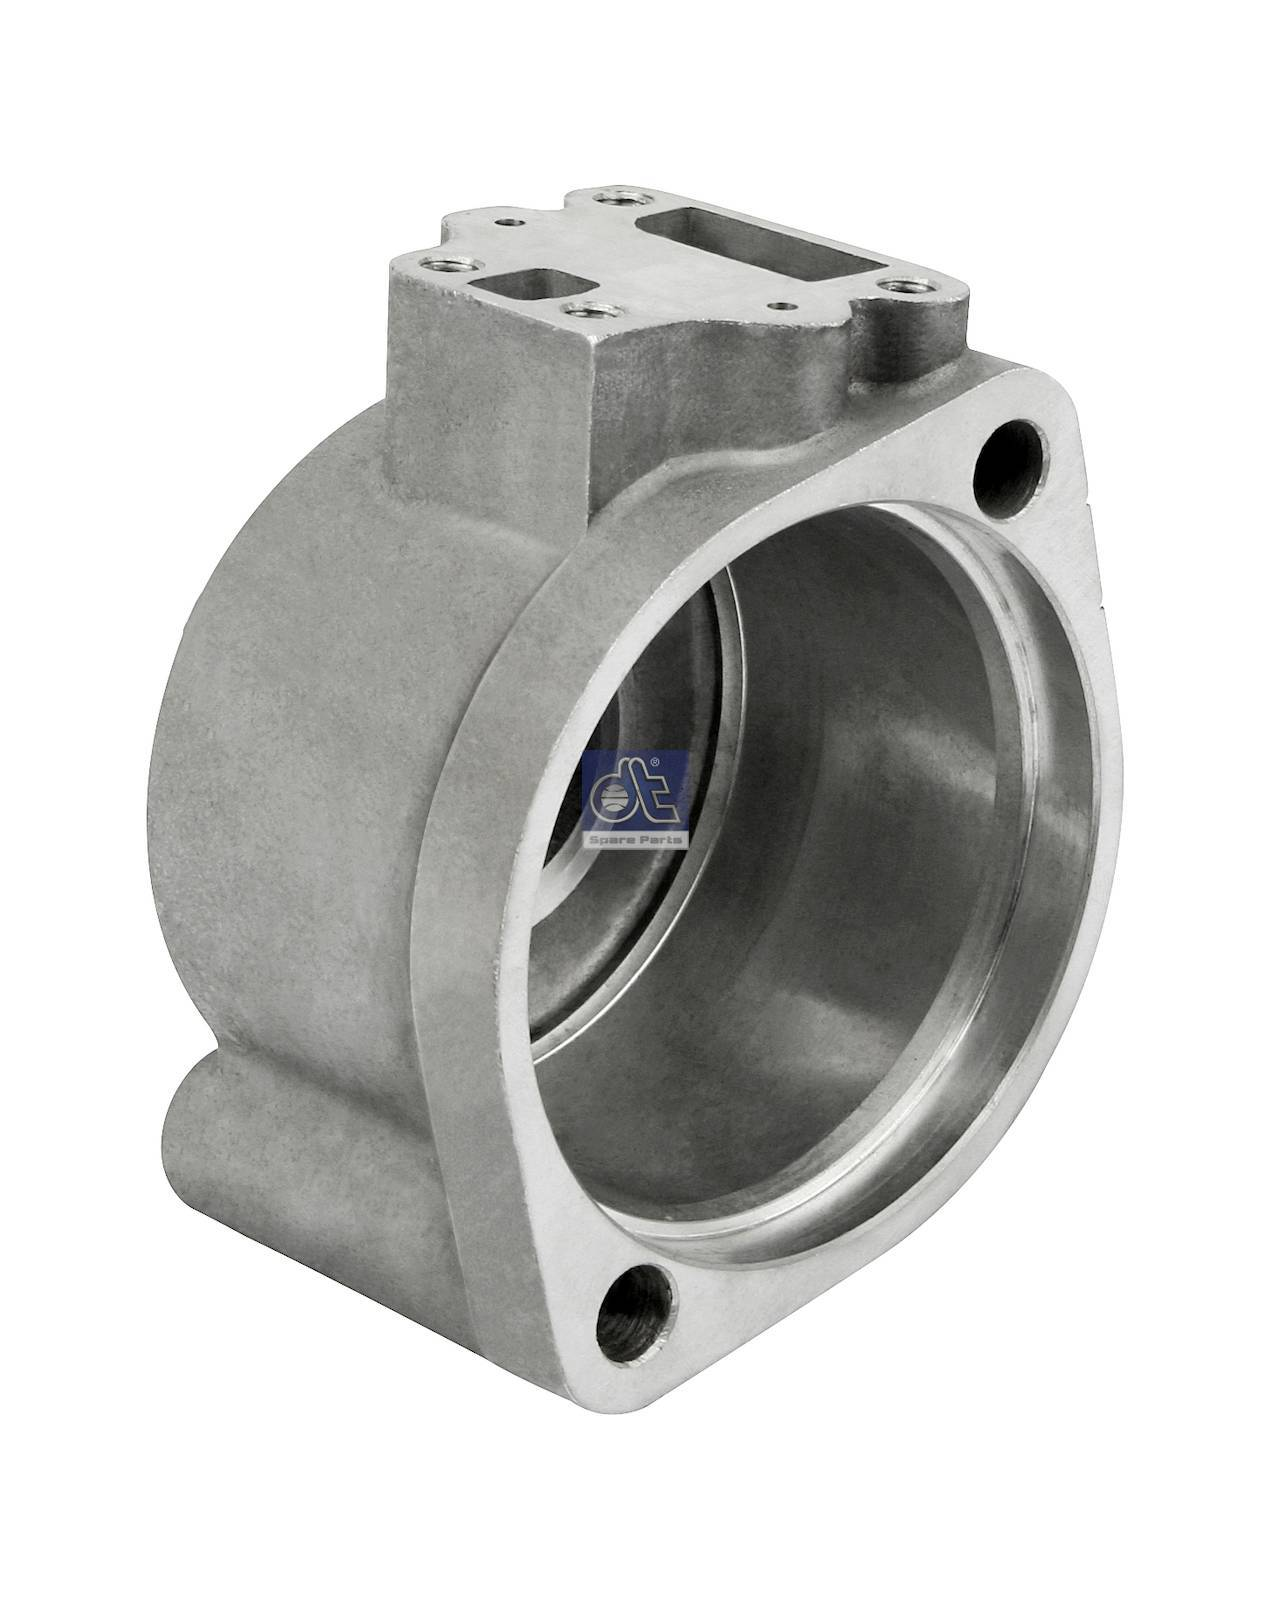 Control cylinder housing